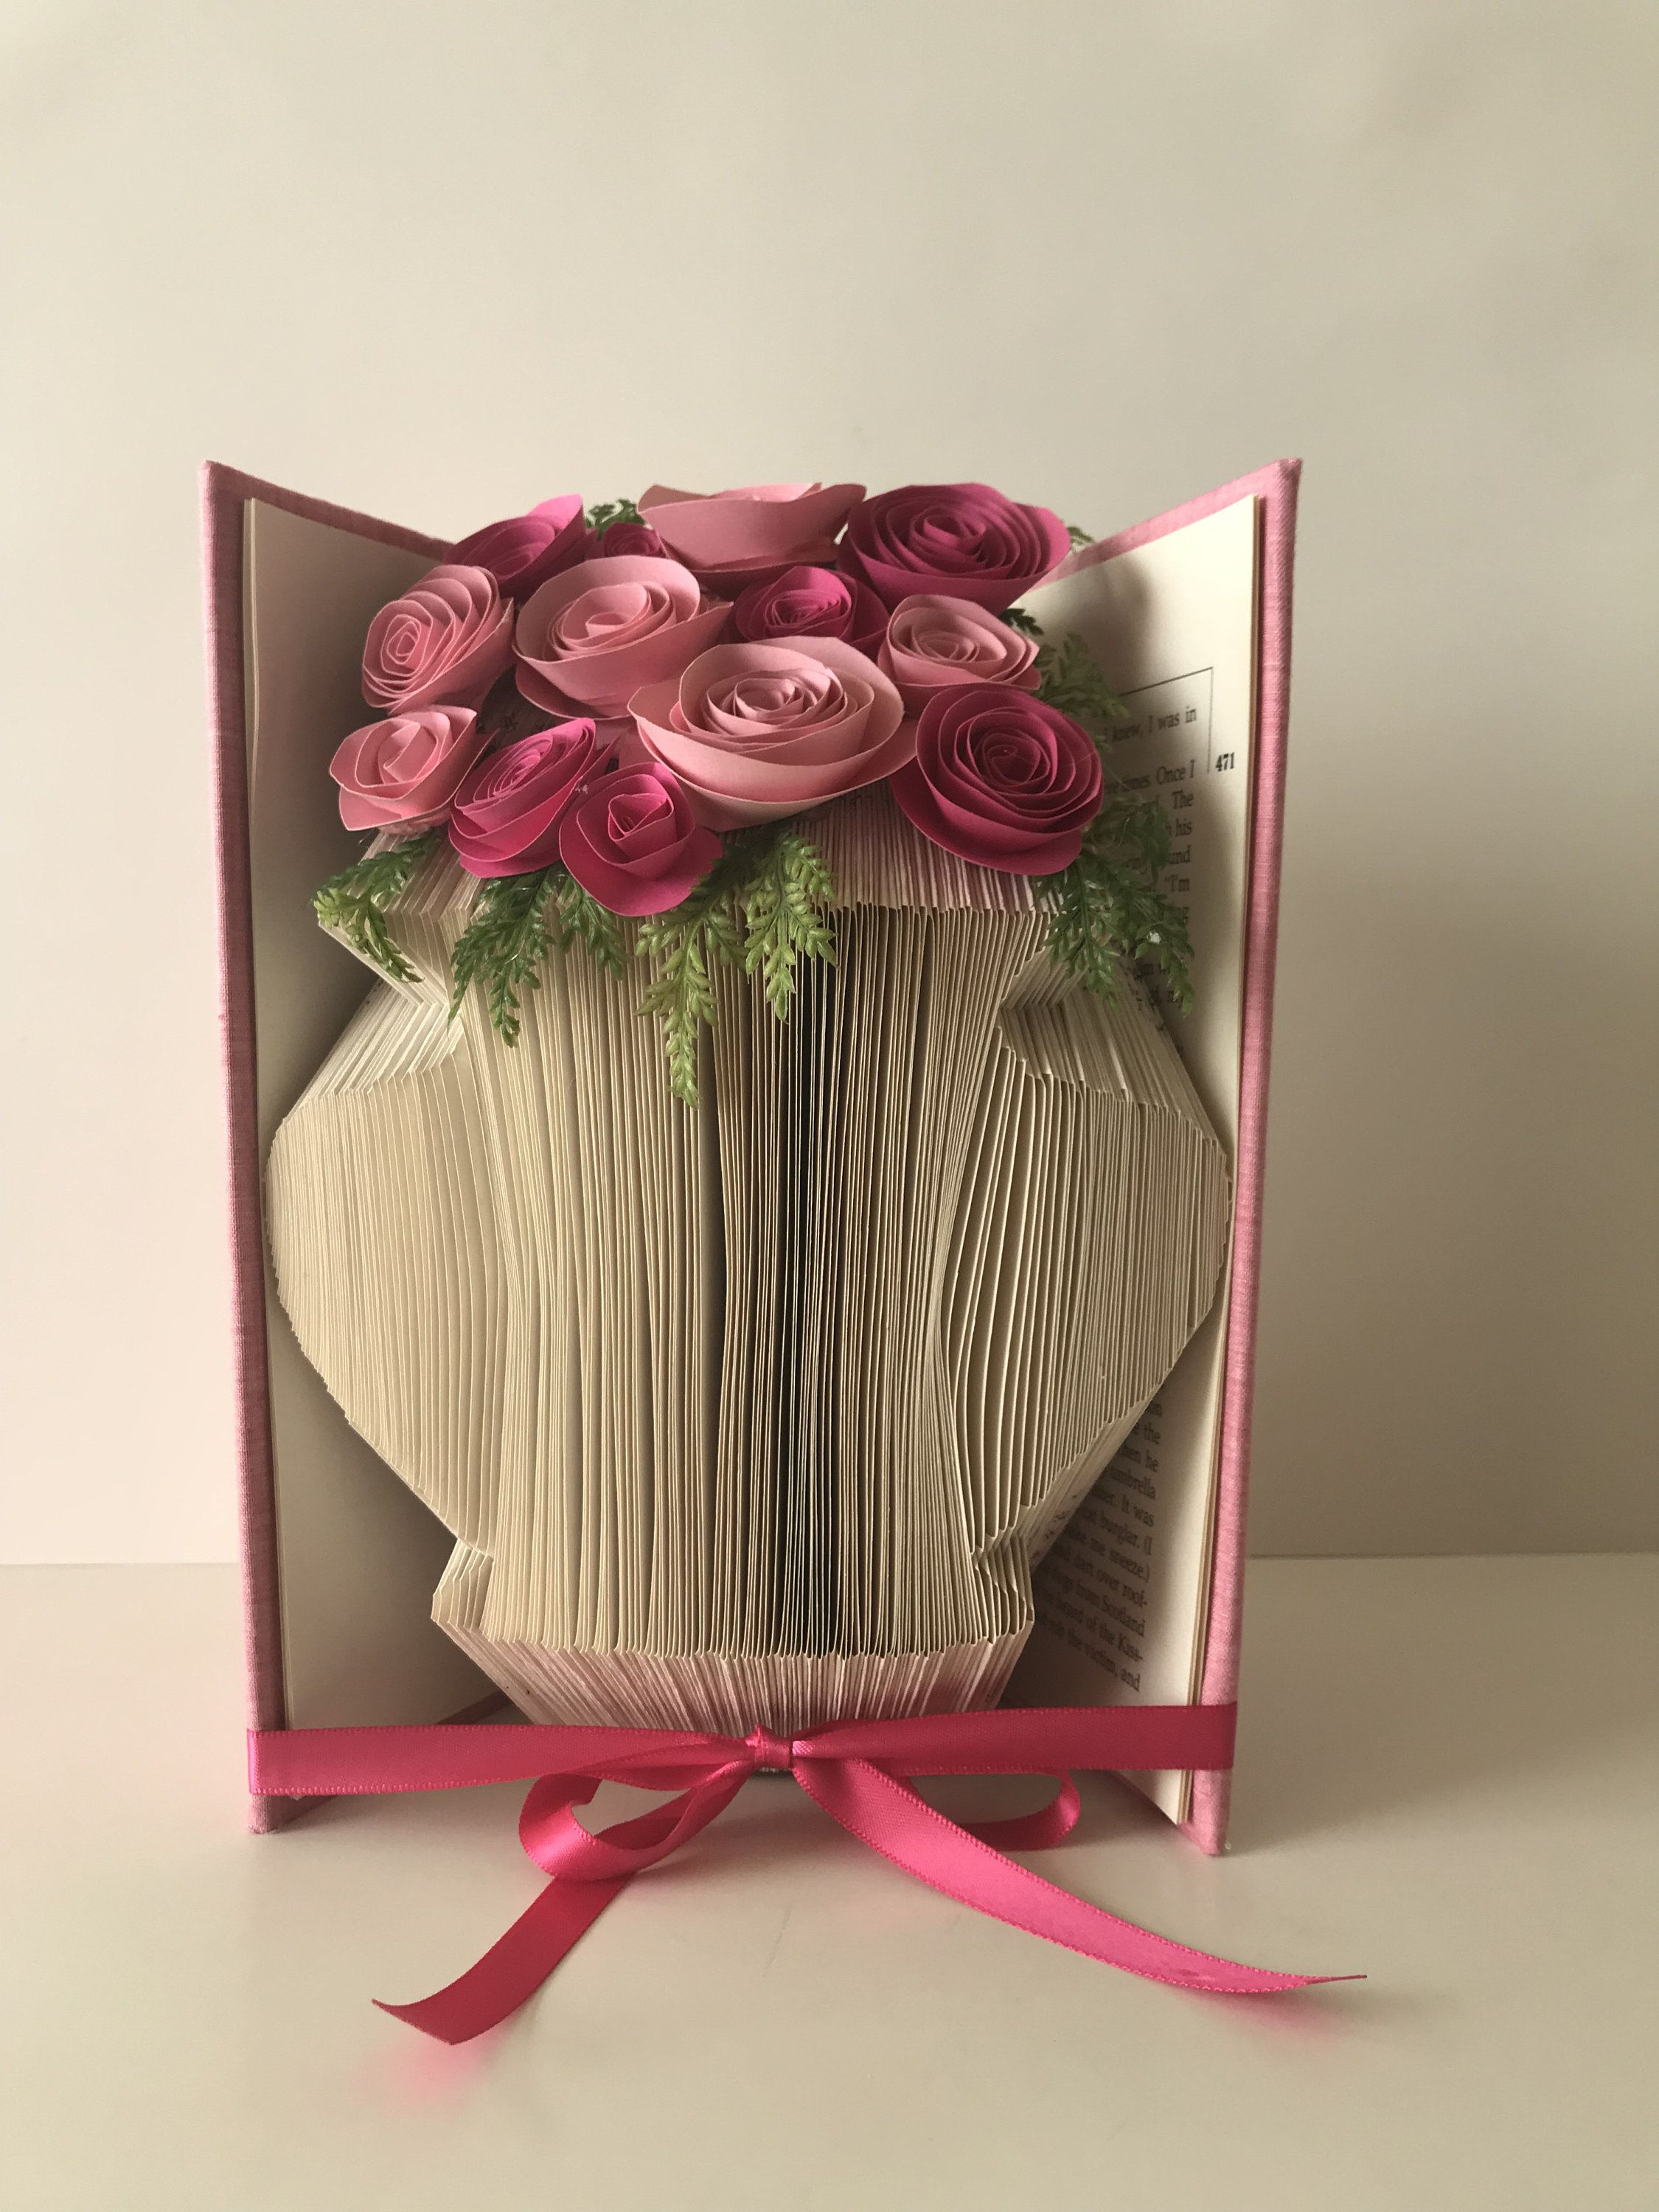 Personalized Vases For Flowers Flower Vase Book Sculpture Paper